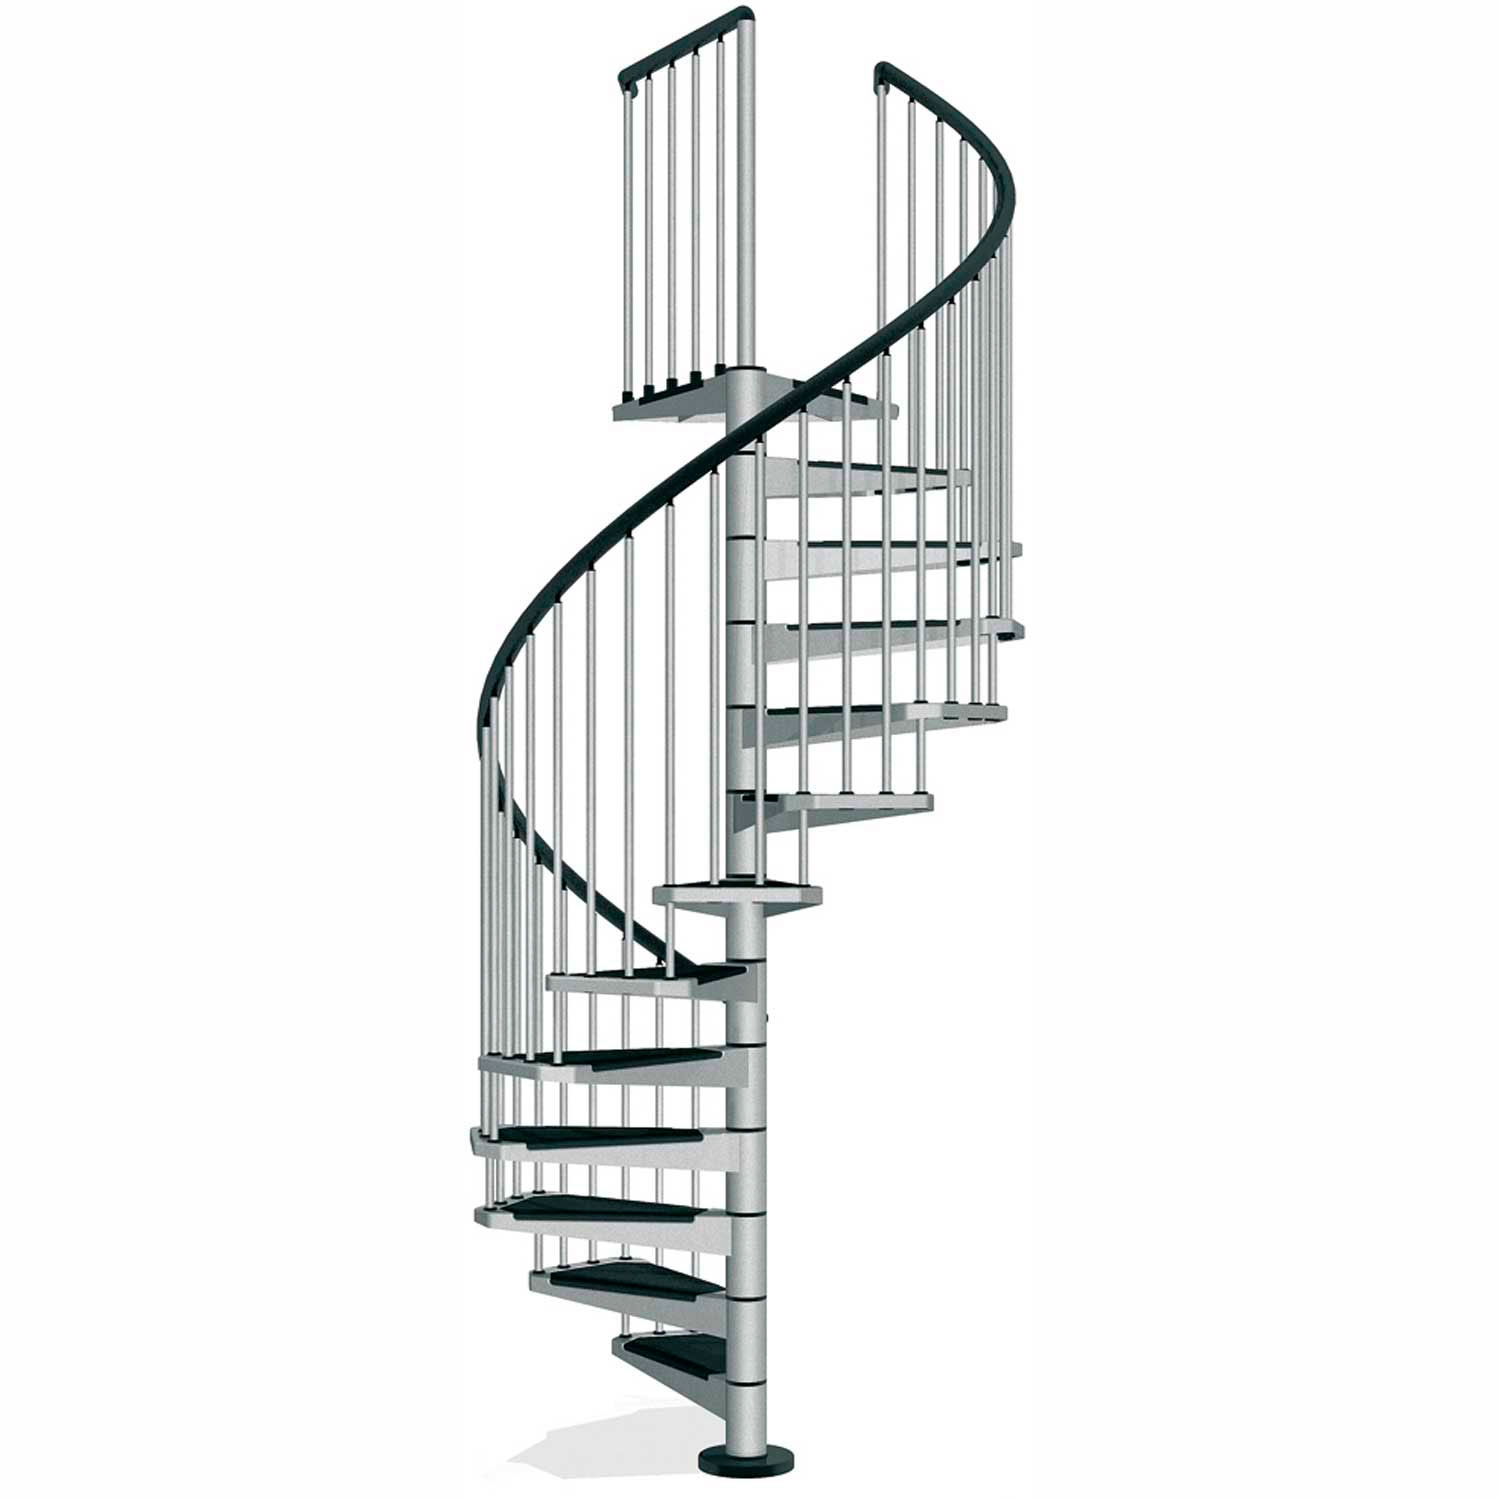 Mezzanines Platforms Stairs Spiral Staircases Arke Civik | Flexible Handrail For Spiral Staircase | Staircase Ideas | Stair Kit | Loft Stairs | Stair Parts | Modern Staircase